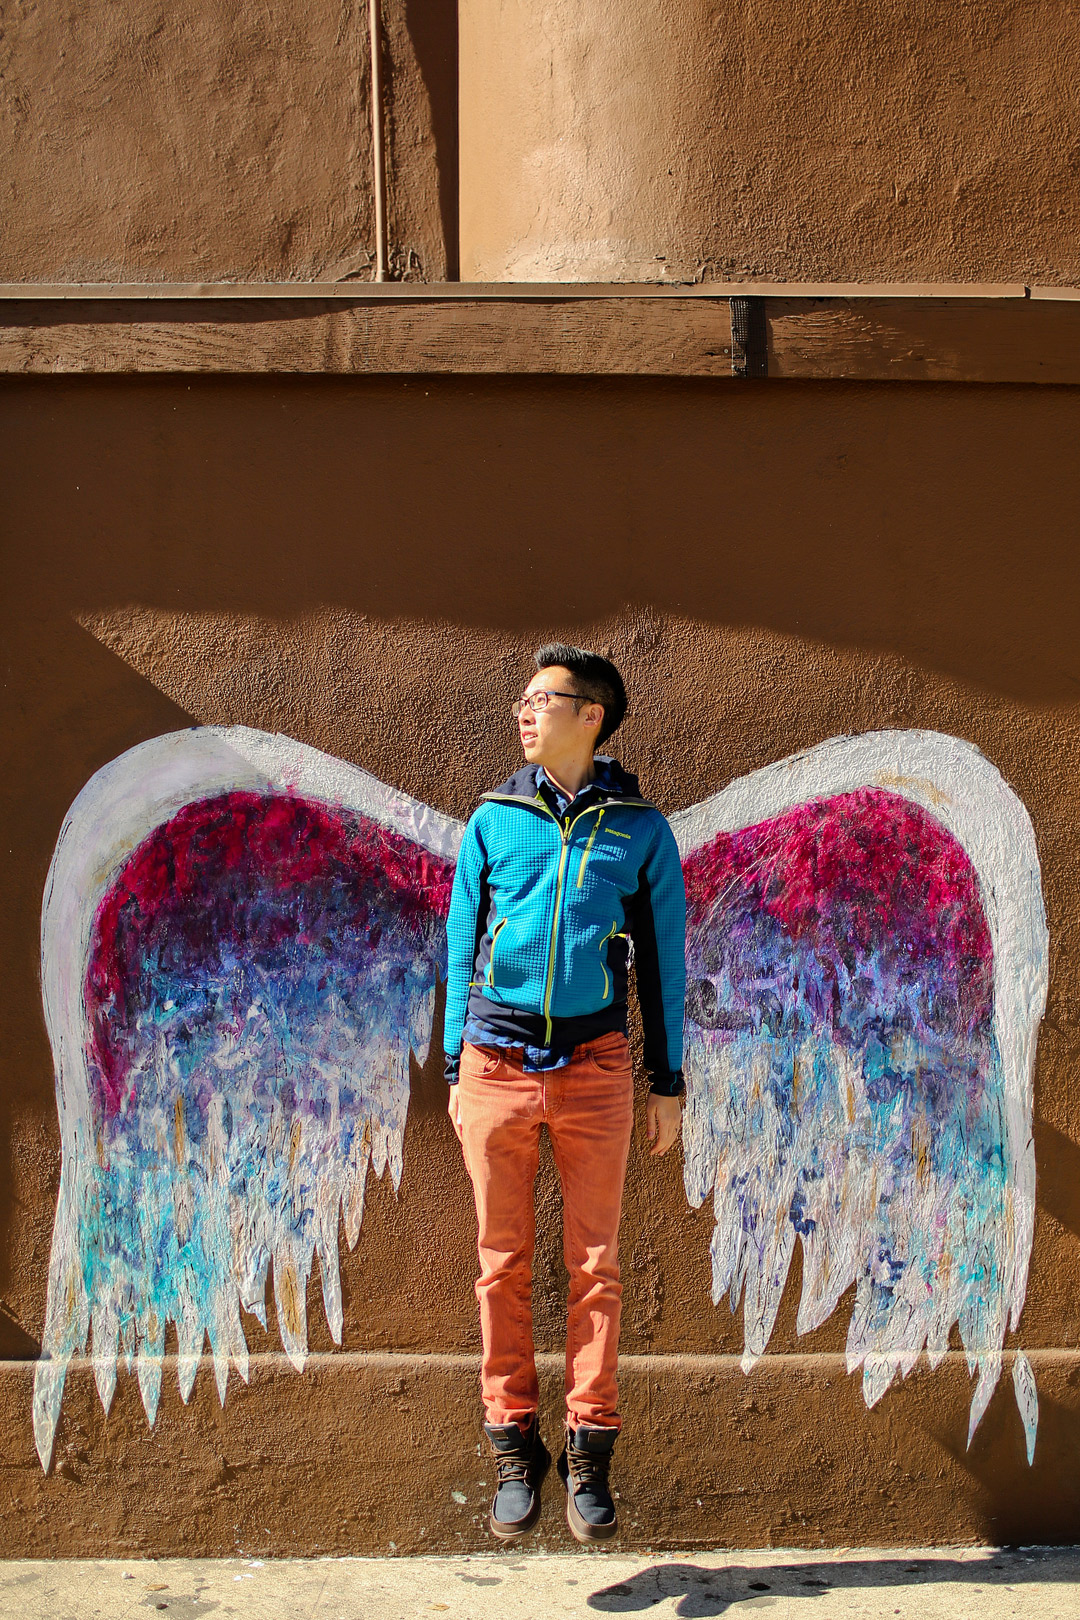 Colette Miller's Angel Wings Project + 25 Cool Photoshoot Locations in Los Angeles // Local Adventurer #discoverla #losangeles #la #lalaland #visitcalifornia #california #mural #instagram